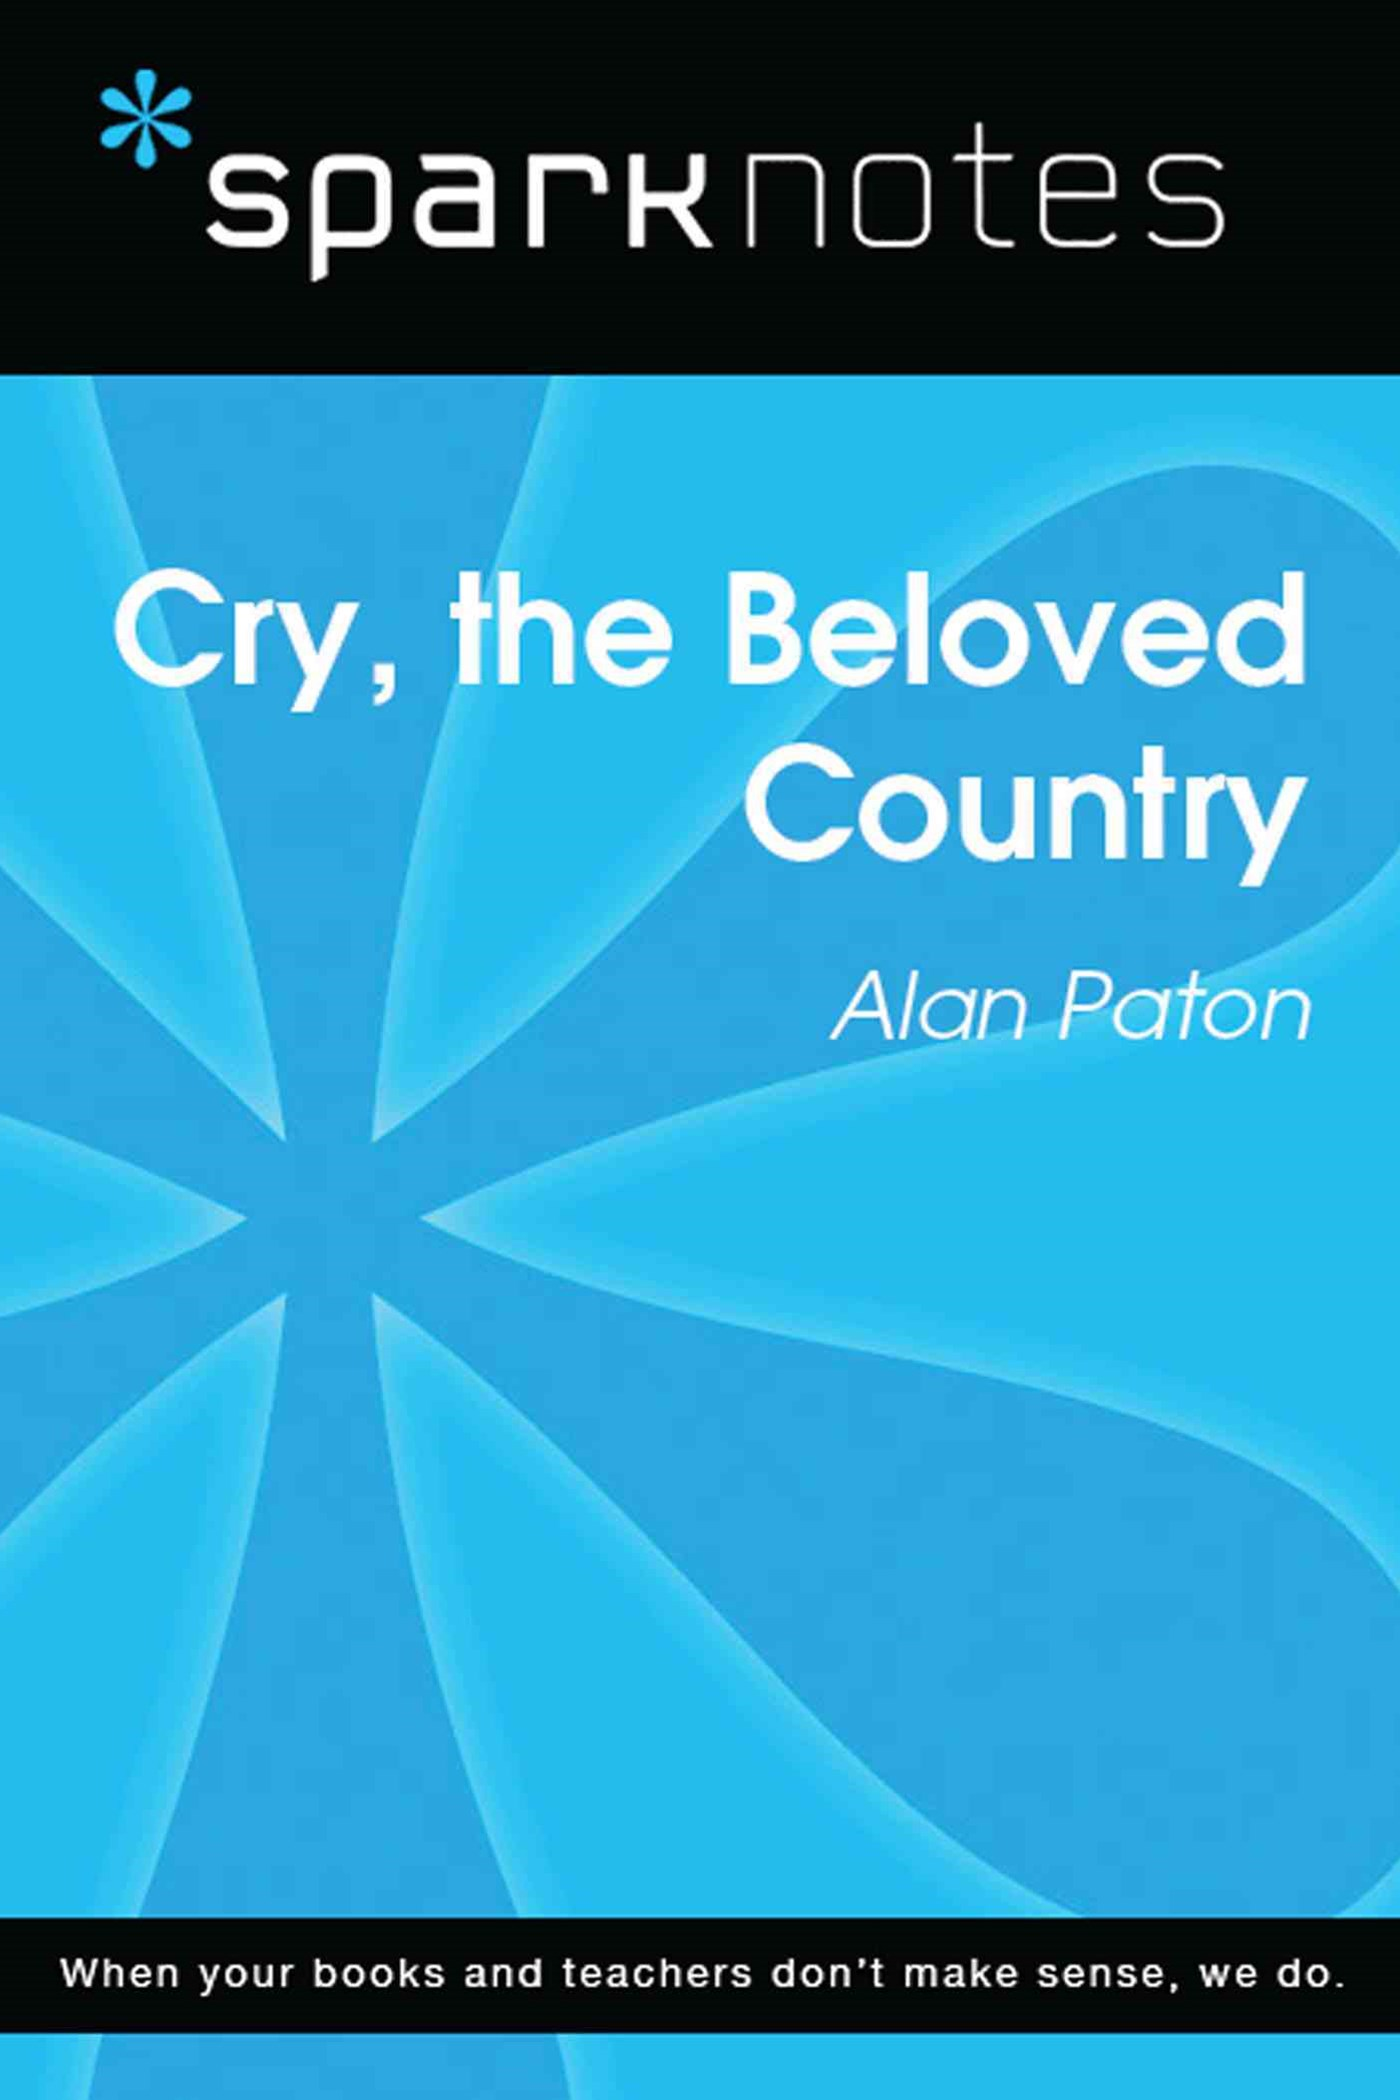 a review of cry the beloved country by alan paton Author interviews, book reviews and lively book commentary are found here   how is cry, the beloved country part story, part prophecy, and part psalm   paton writes, and because he spoke with compassion, the old man.